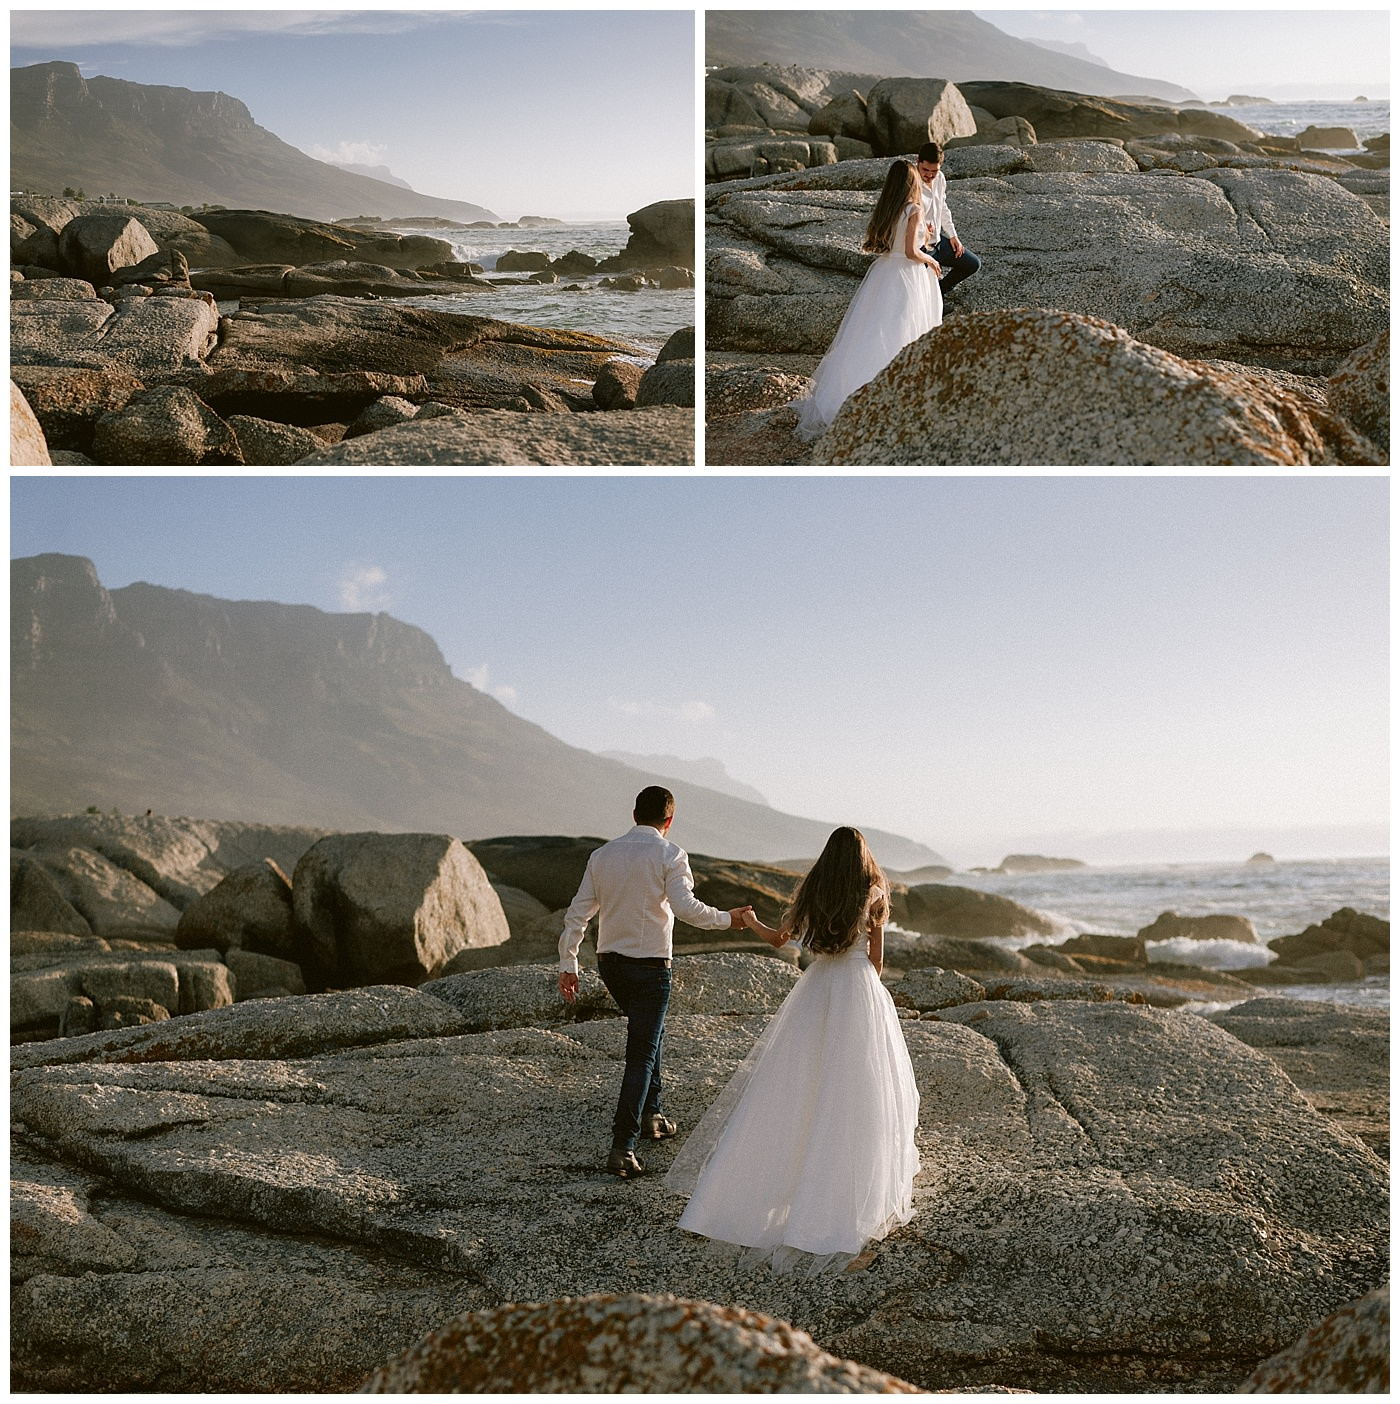 Cape Town beach photography